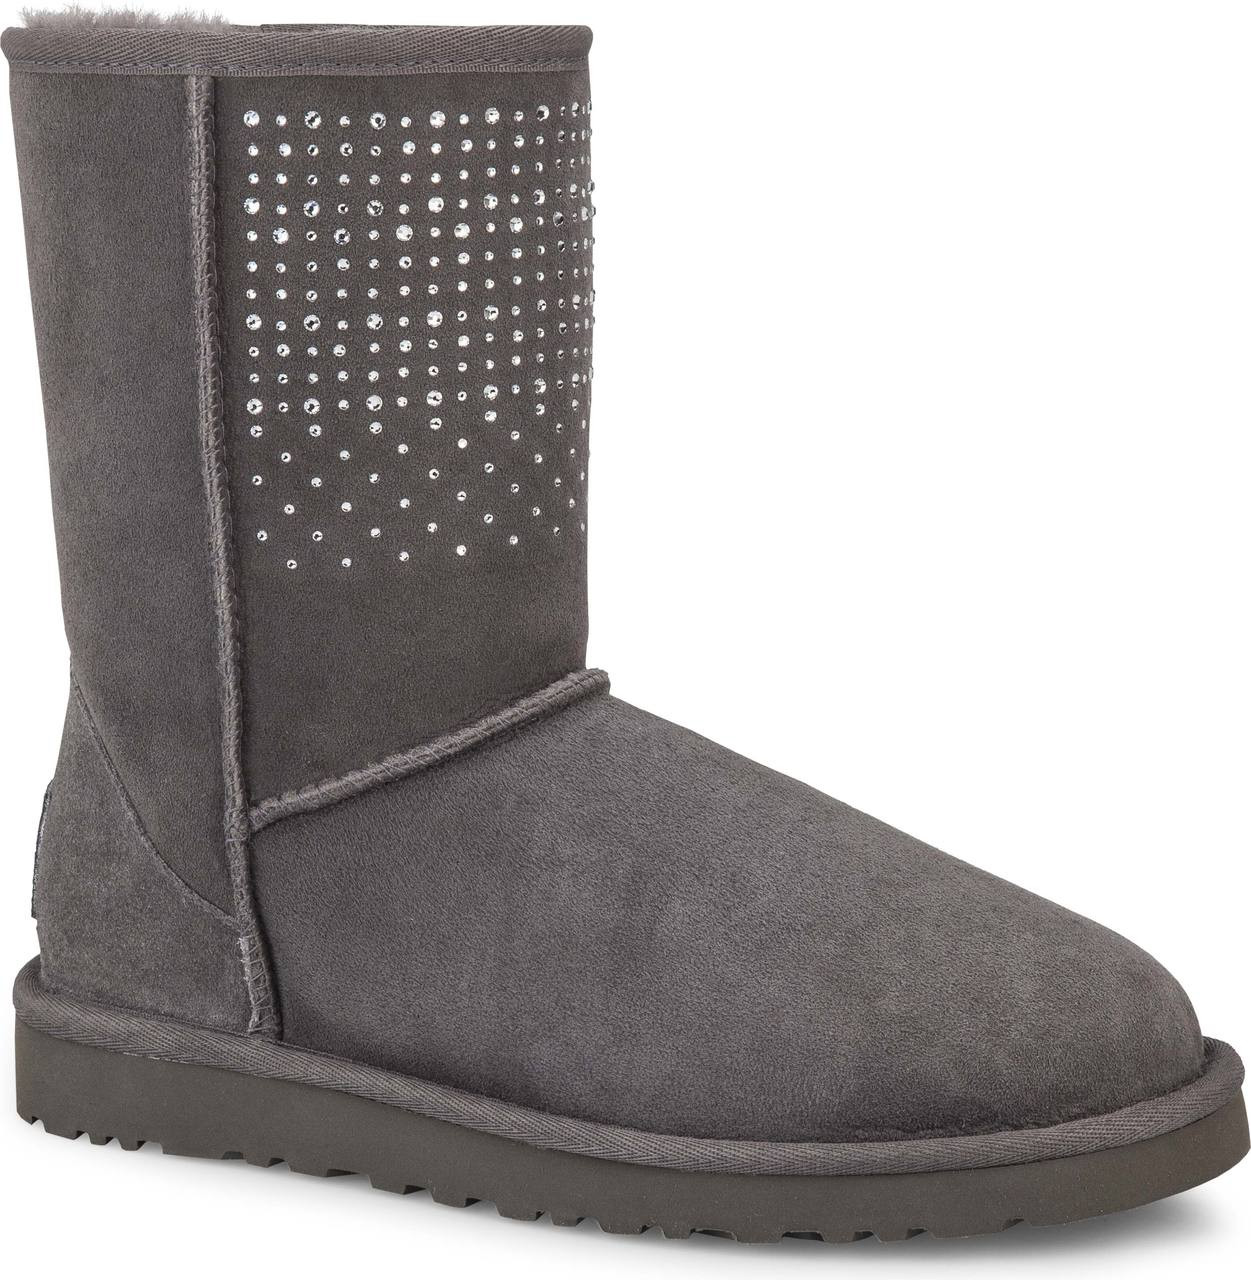 11c3ab88d04 Ugg Classic Short Patchwork Boot